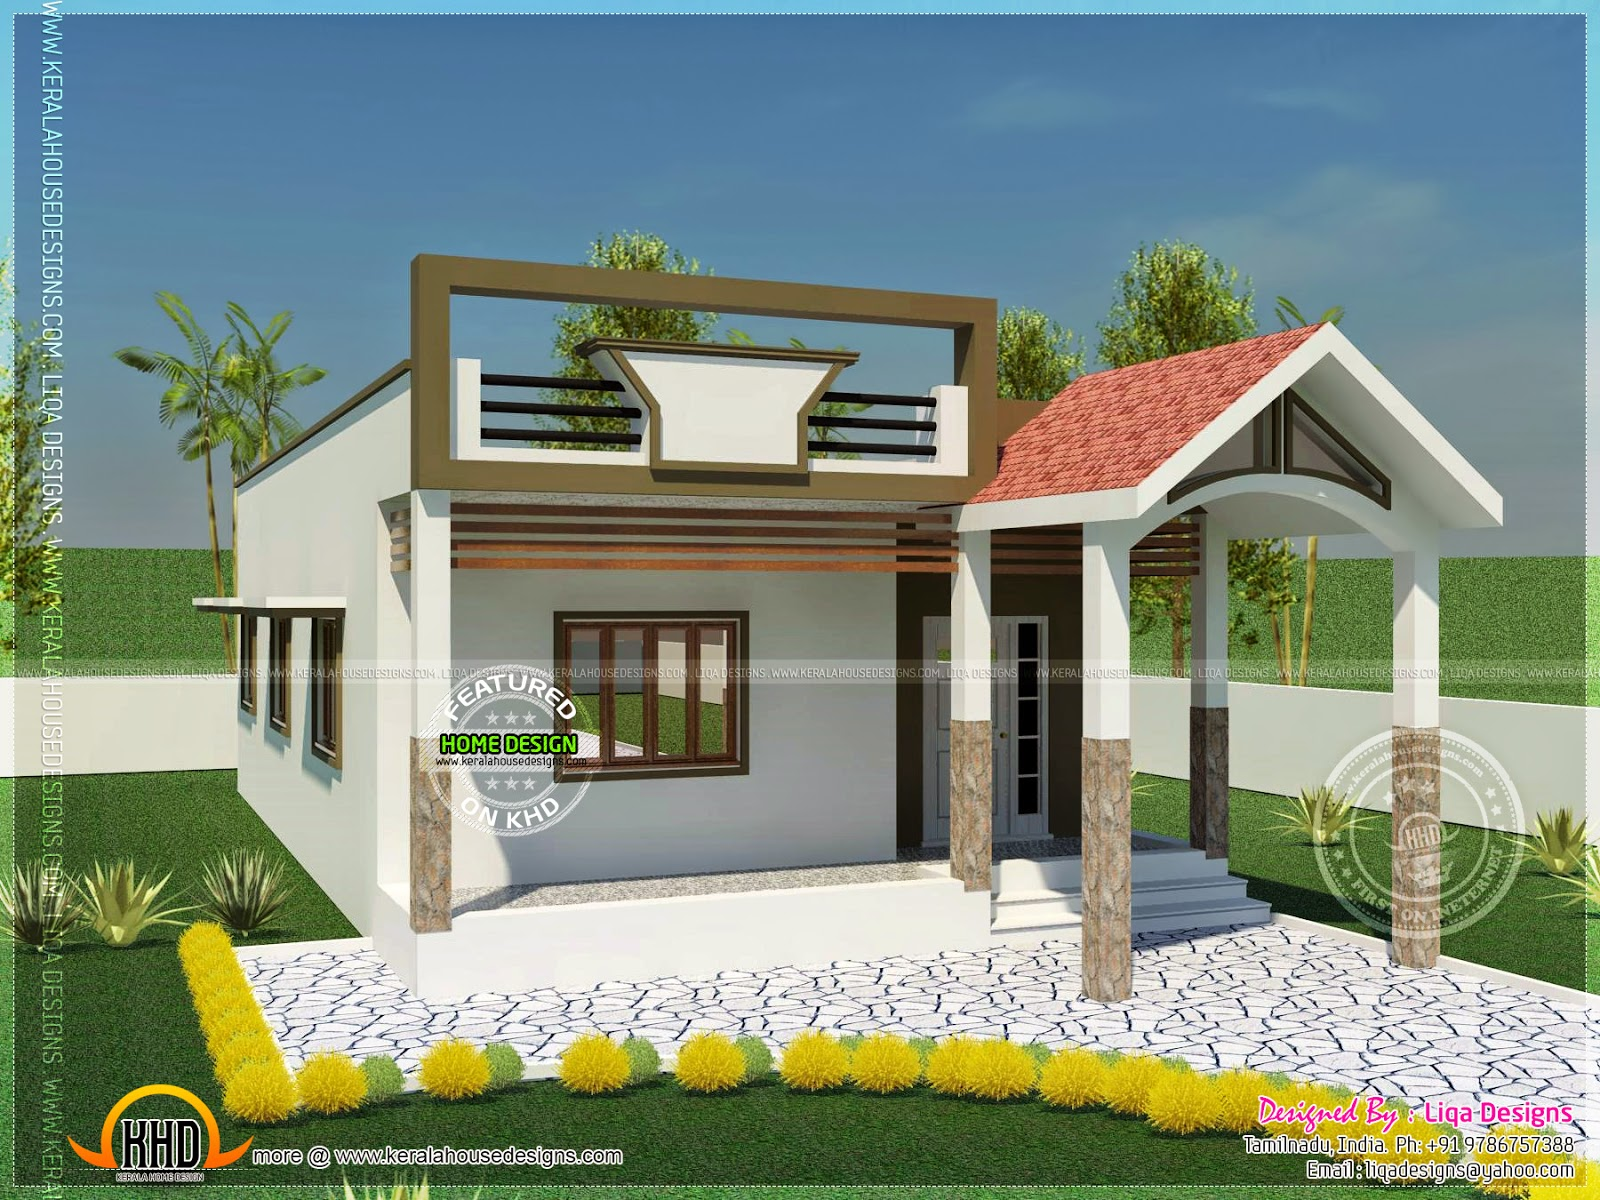 October 2014 home kerala plans for 2 bedroom house designs in india